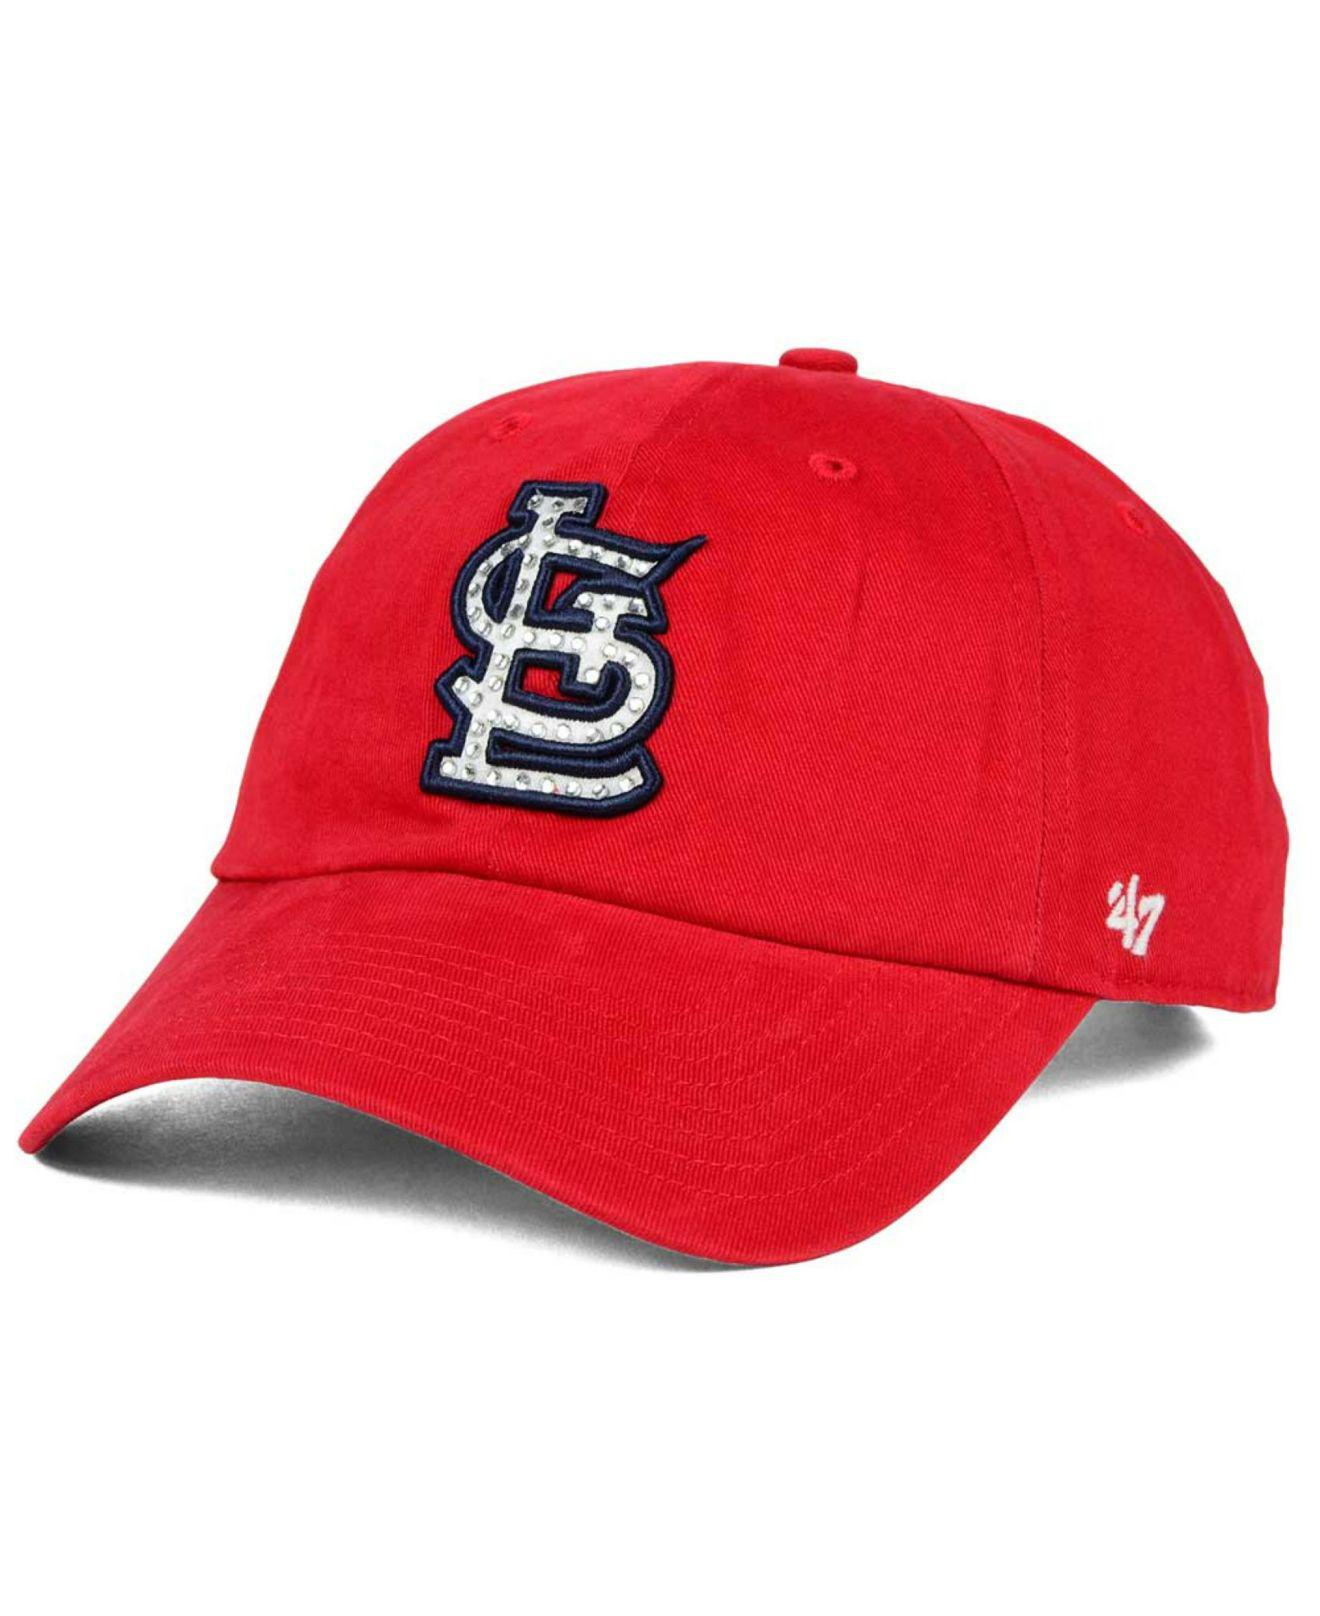 109234f3d9f08 ... switzerland lyst 47 brand st. louis cardinals gemstone clean up cap in  red for men